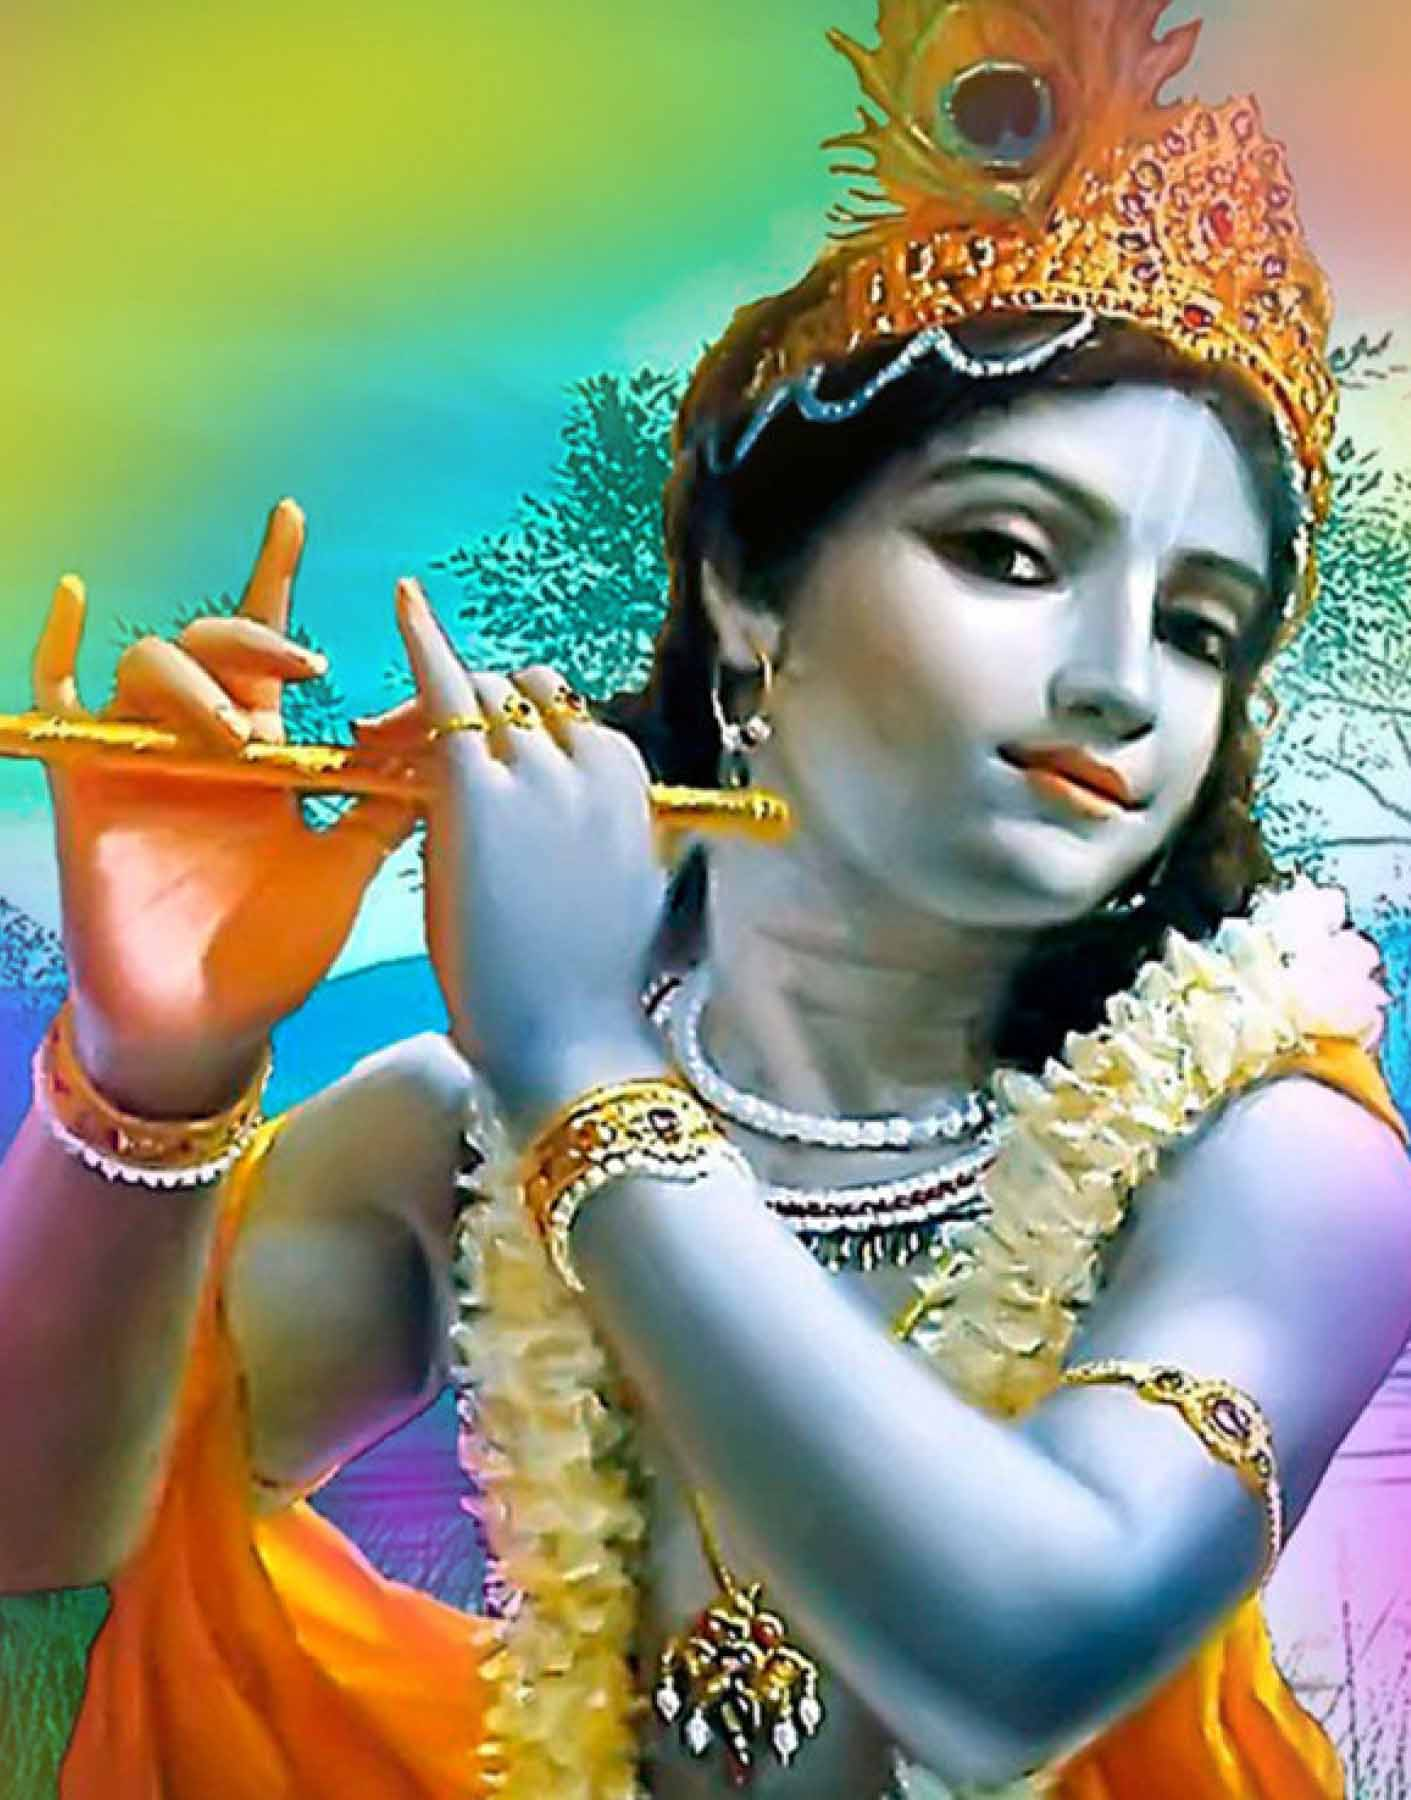 3d Live Wallpaper Pro Apk Free Download Download Lord Krishna Hd Wallpapers For Mobile Gallery